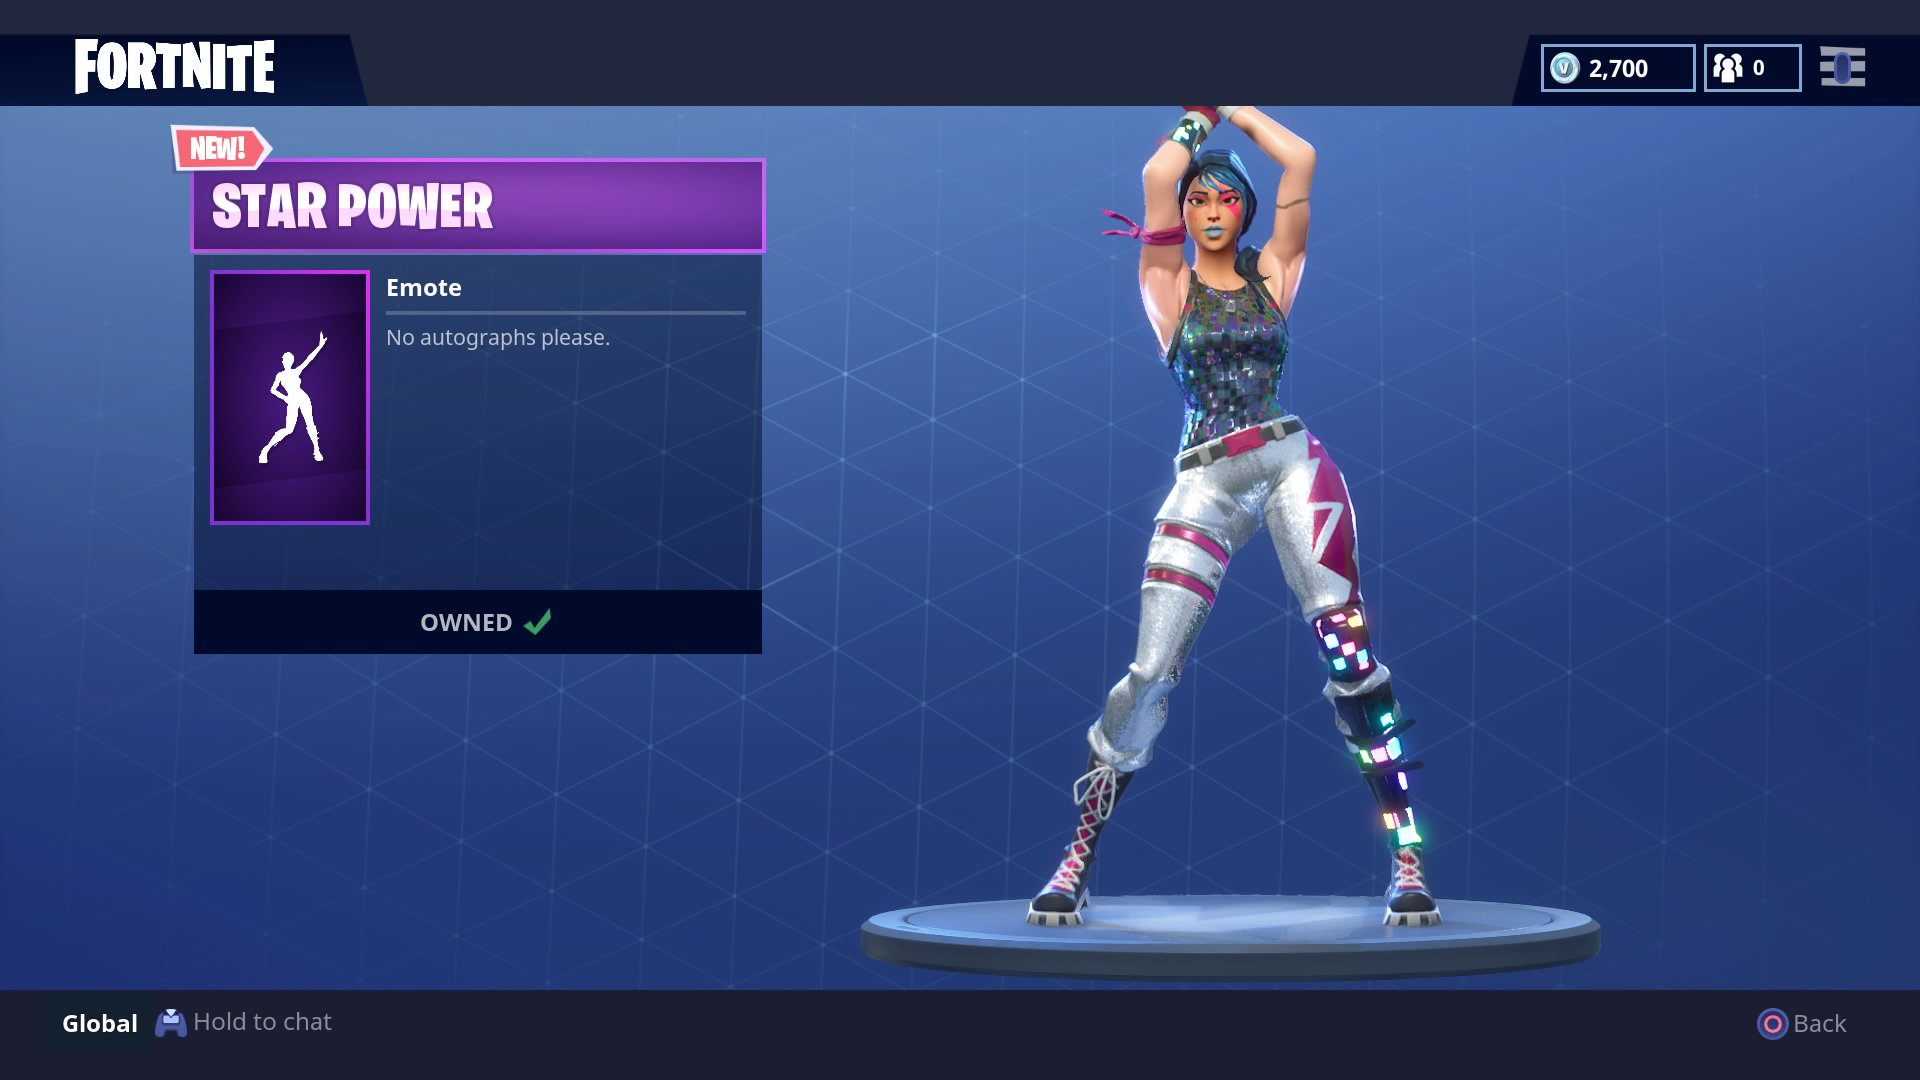 All Fortnite Dance Moves And Names